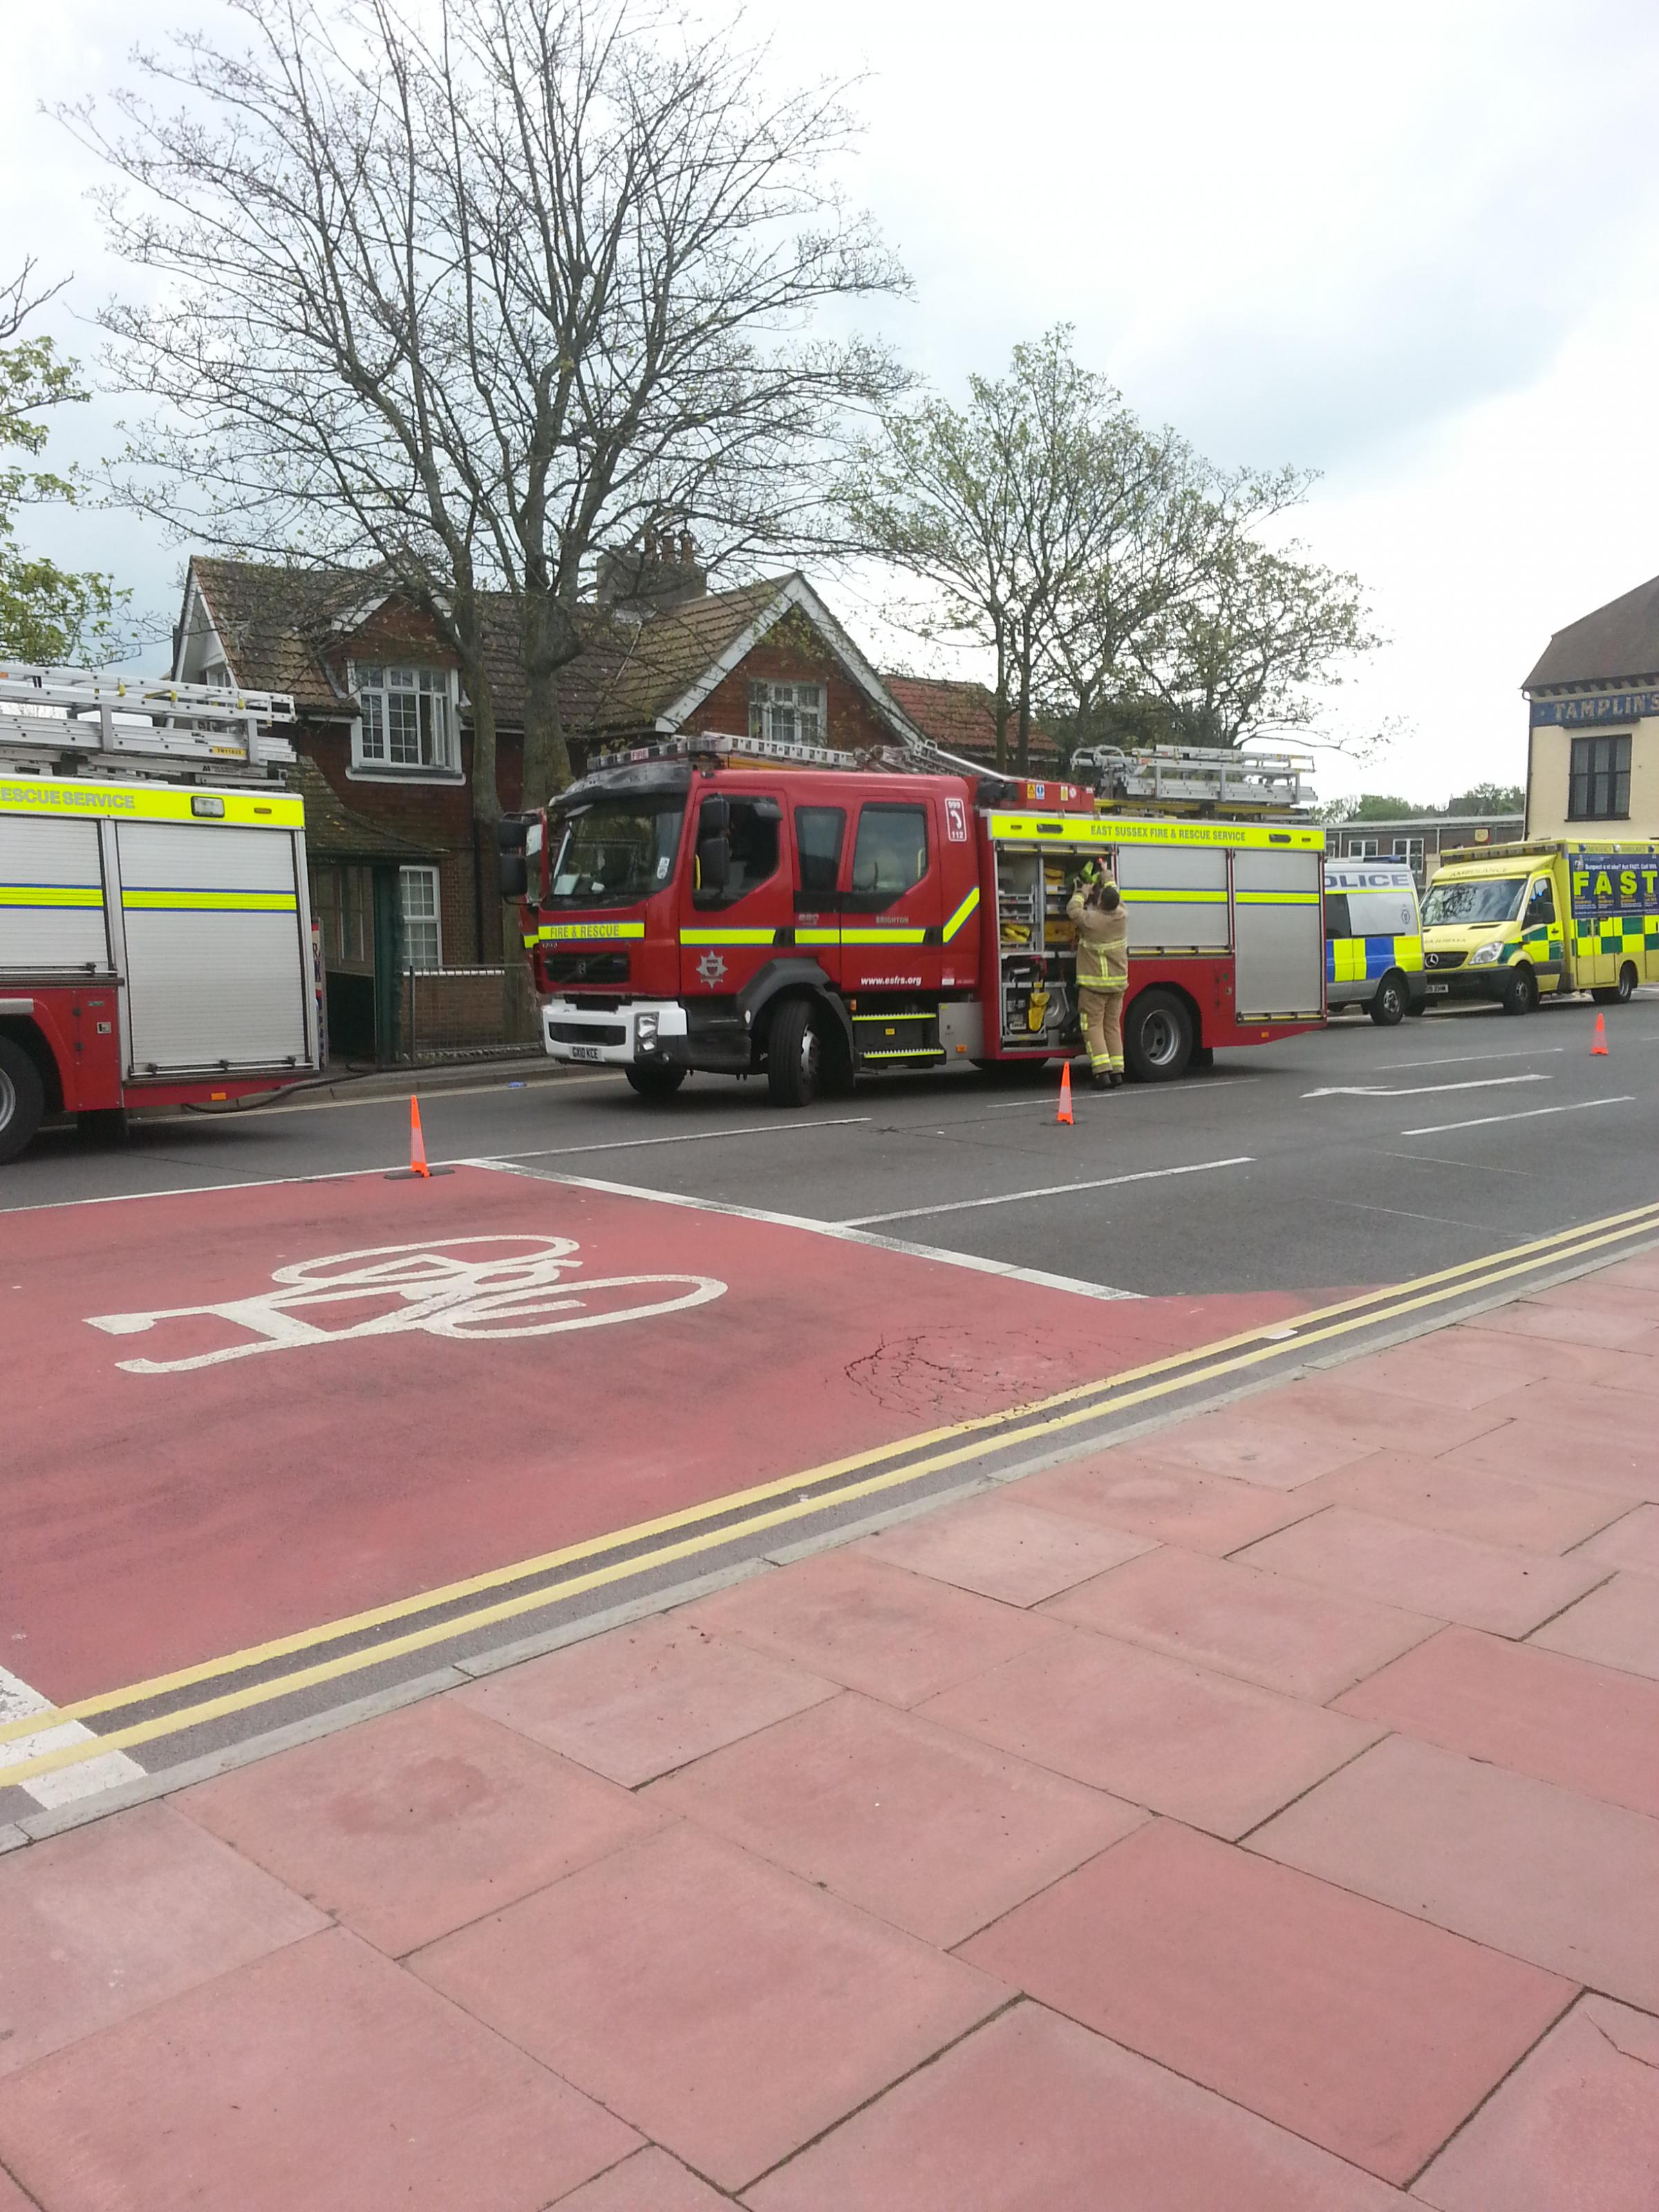 The scene in Ditchling Road (c) Sam Evans